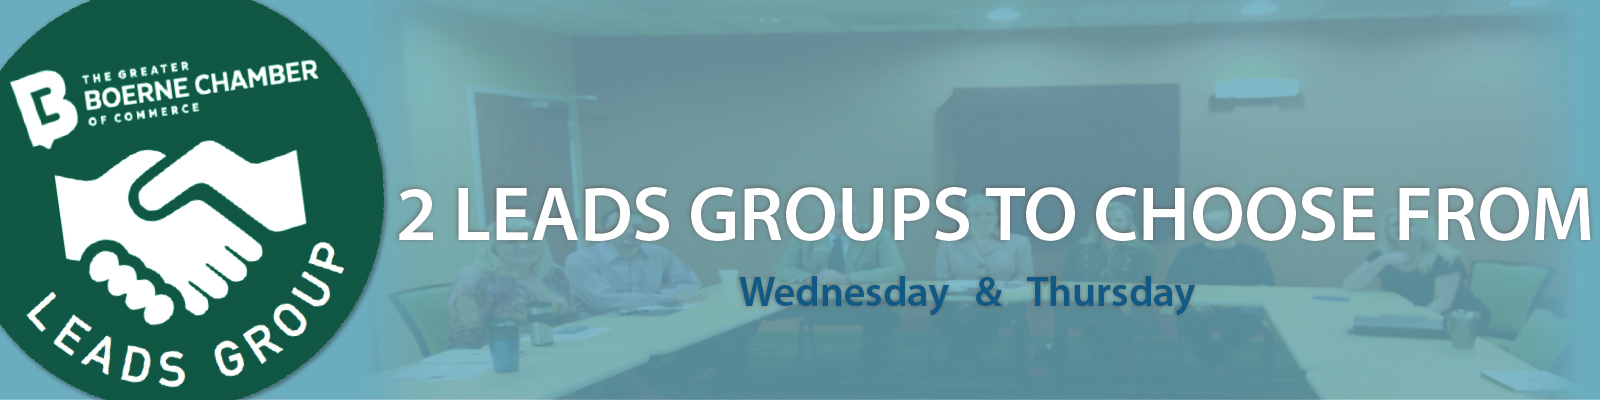 Leads Group Webpage Header Photo